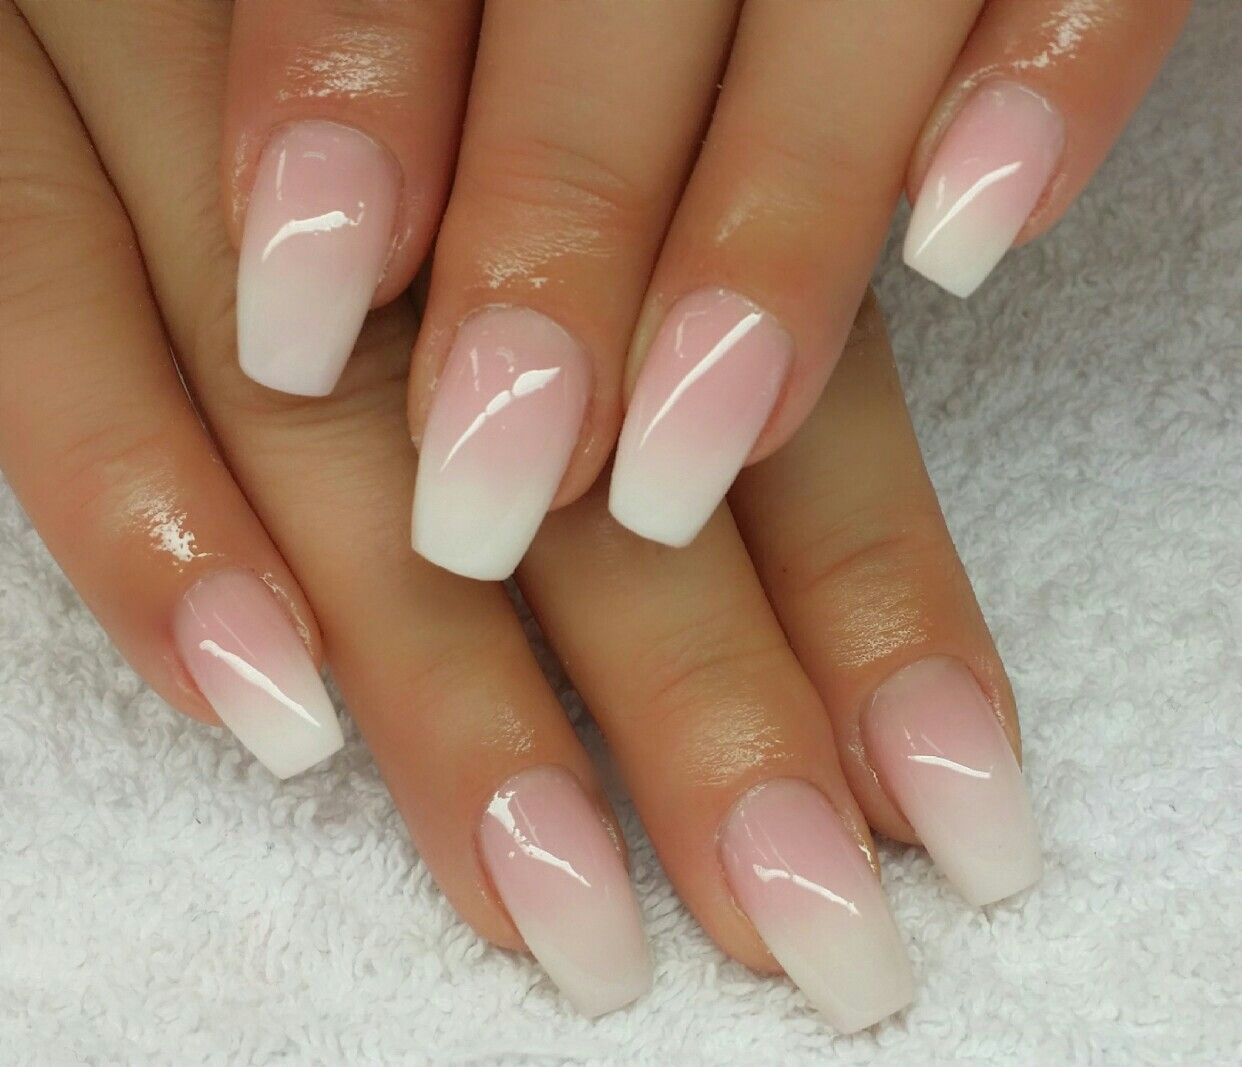 Moderne Nägel Nail Design Babyboomer Siebenschön Nails In 2019